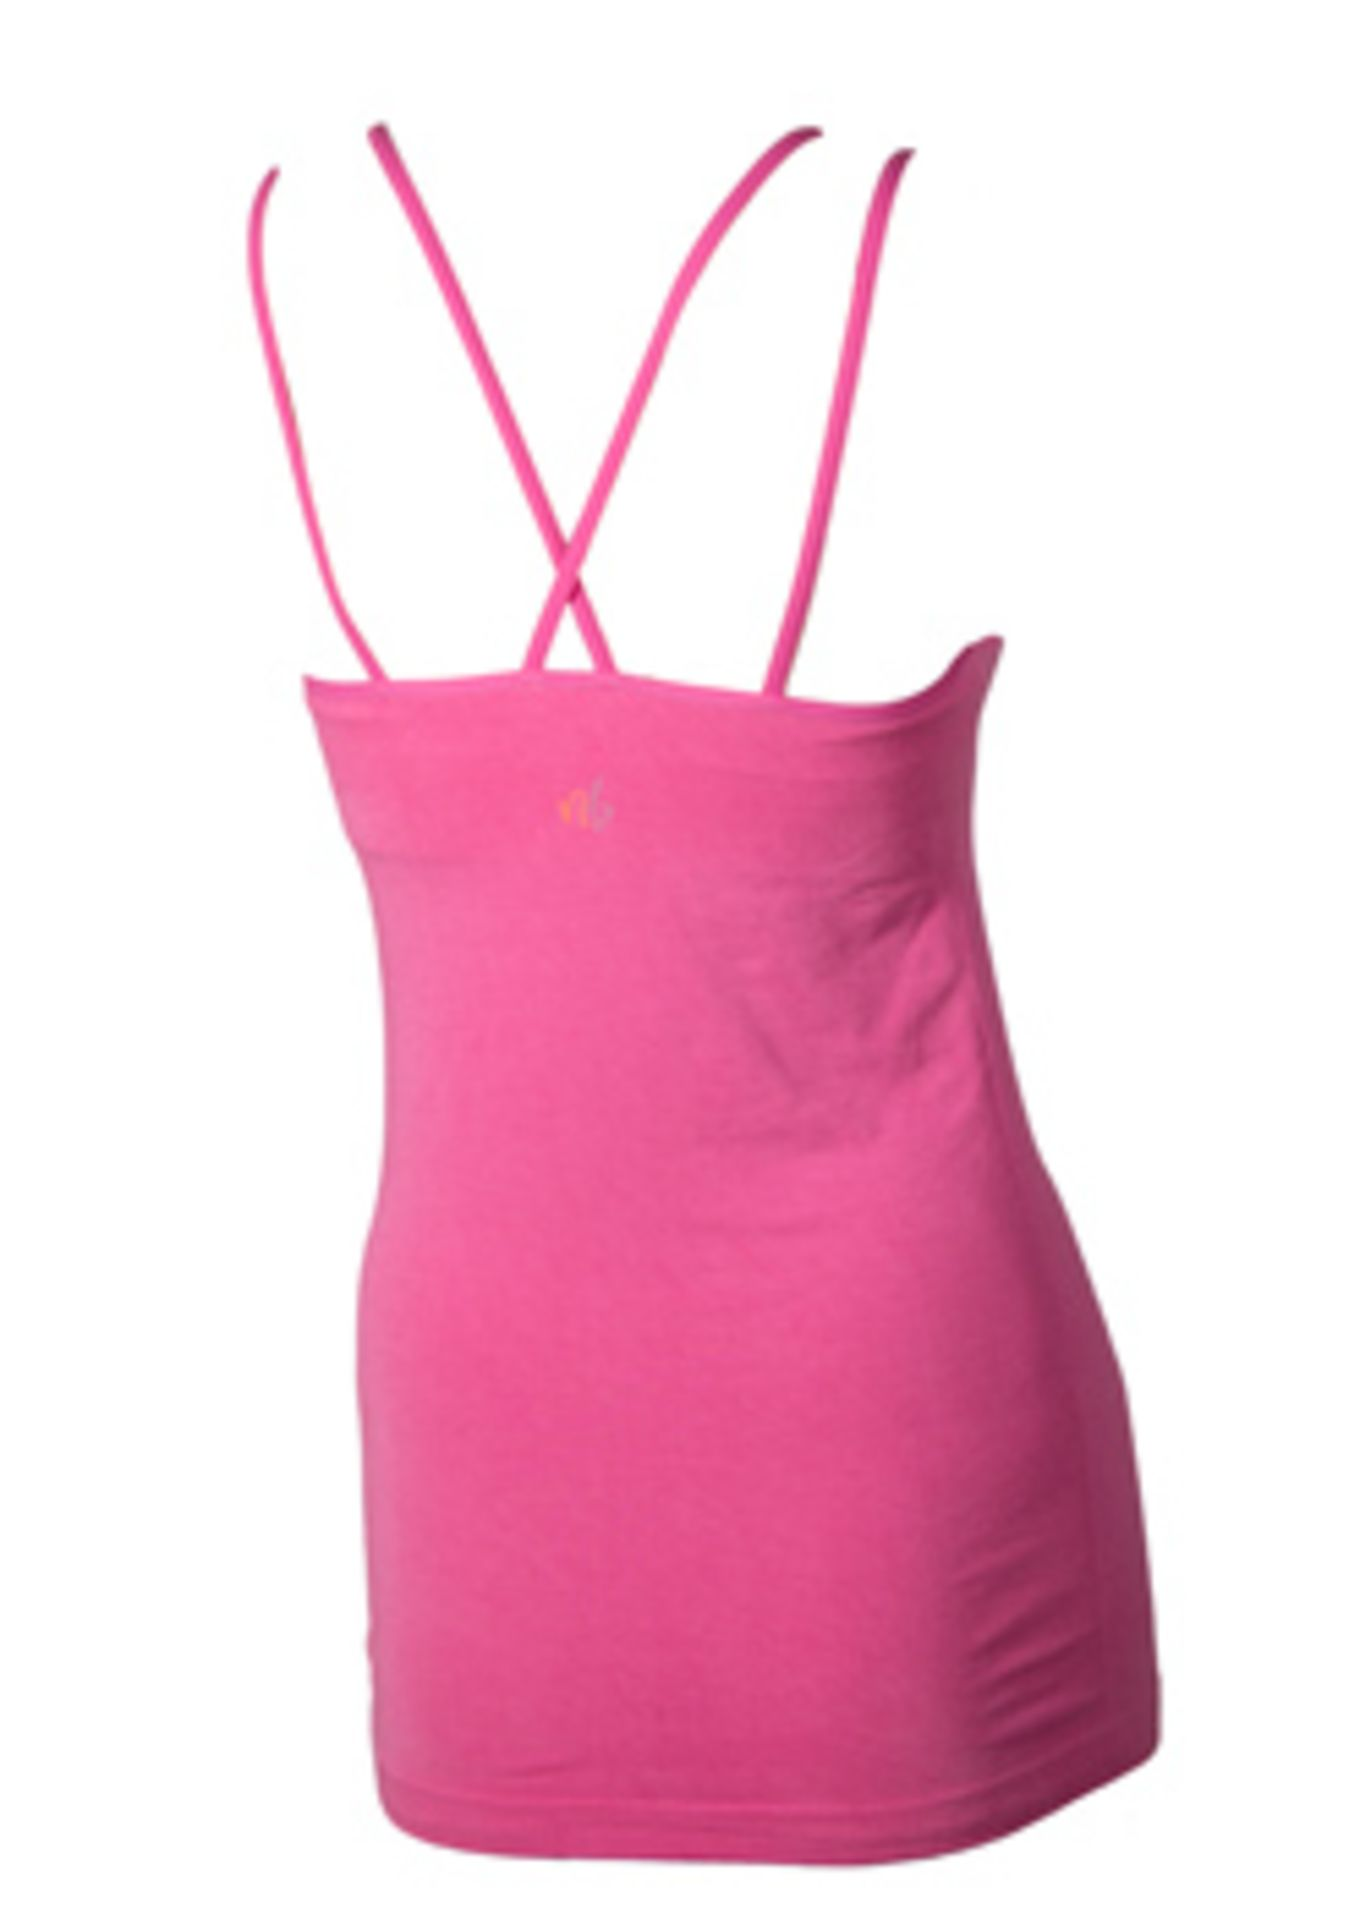 3 x Bamboo Yoga Flow Tops w/ Padded Bra   XS - Image 3 of 3